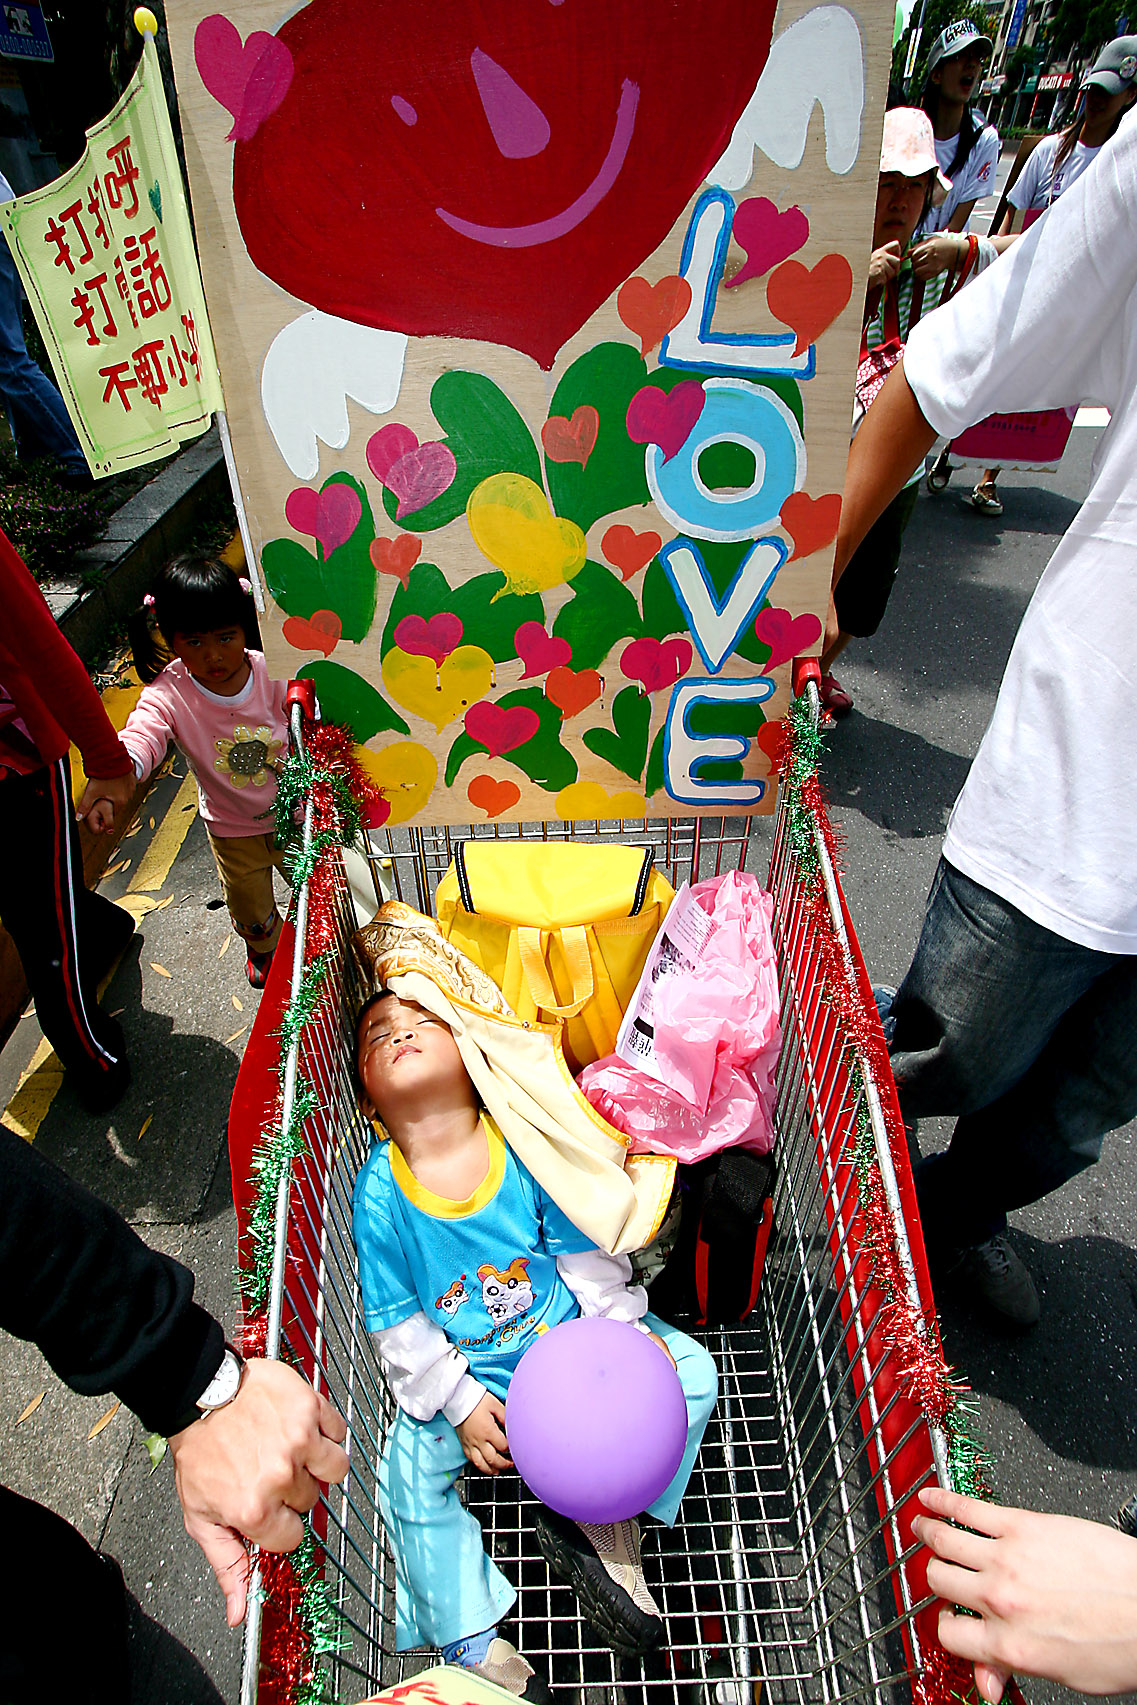 A kid is carried in a trolley at a rally held on April 29, 2007, to celebrate the International Spank-out Day, which is April 30, in Taipei.